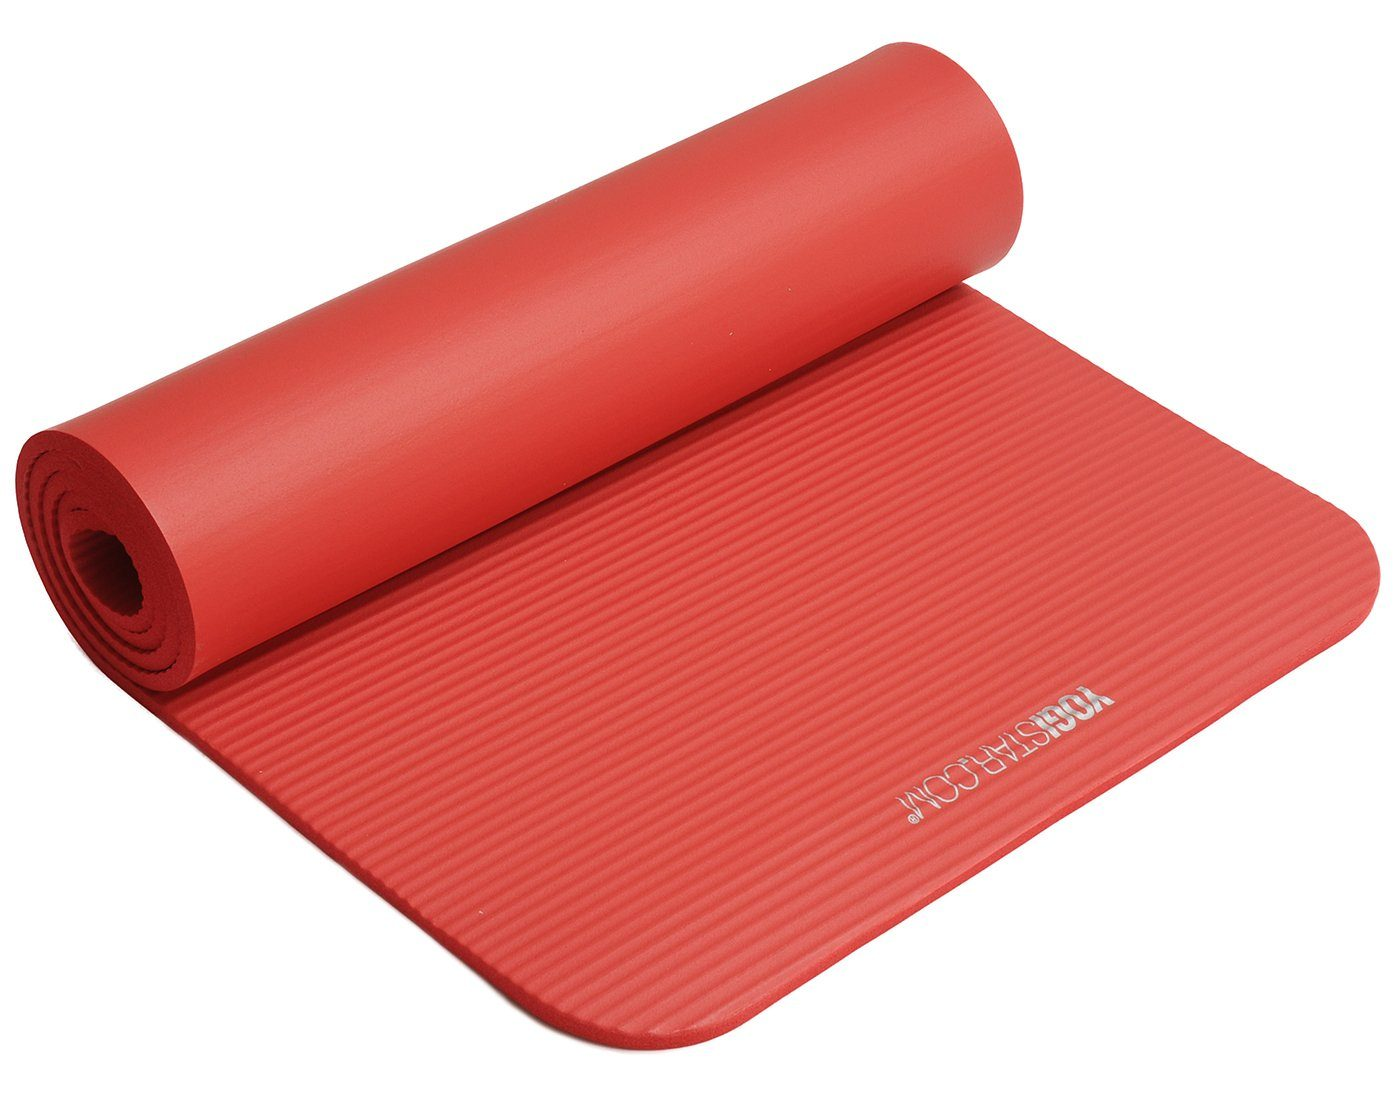 Yogistar Gymnastikmatte »Gym 10mm«